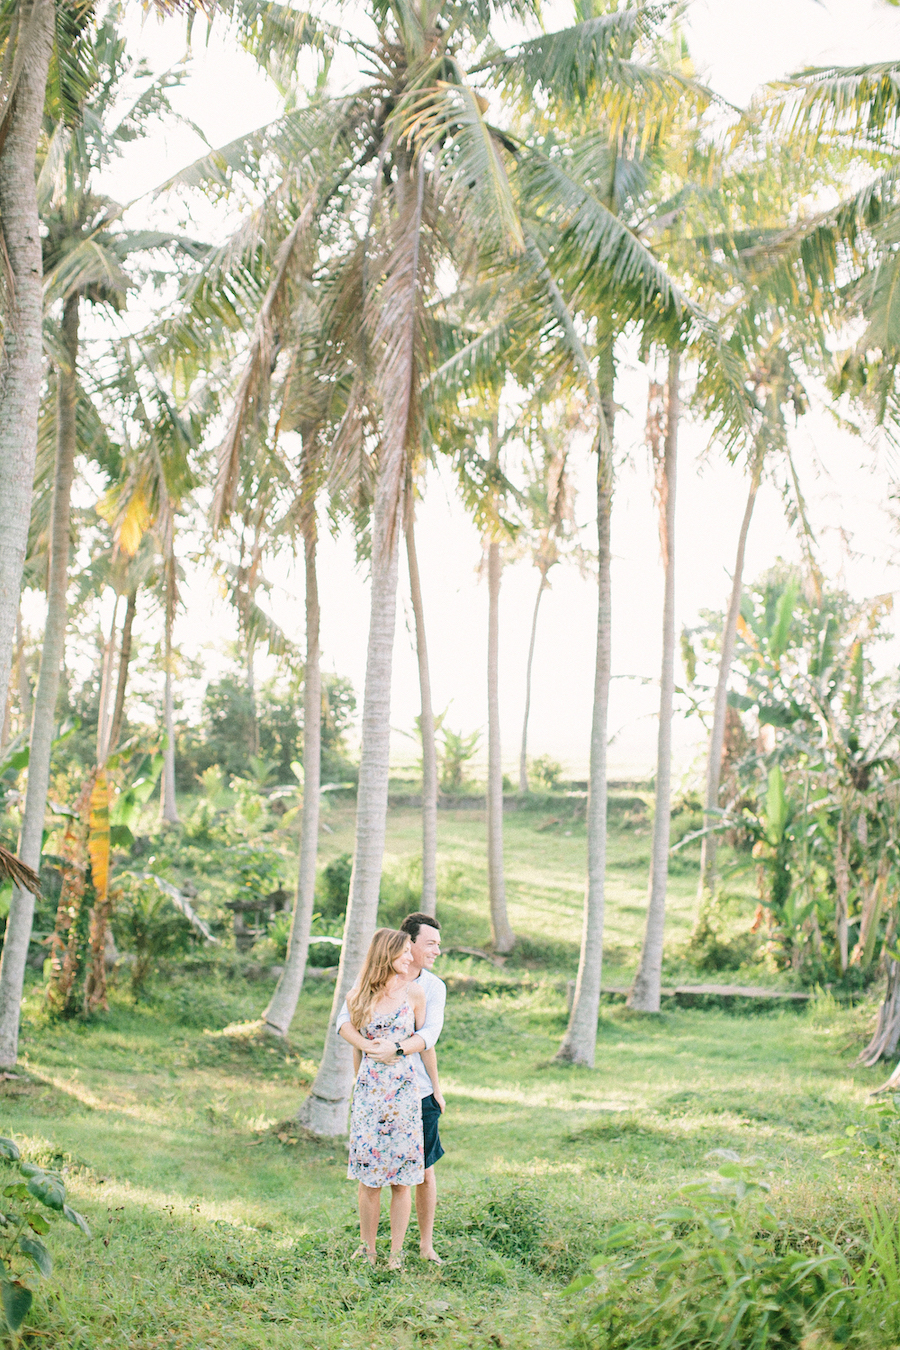 saya-photography-pre-wedding-engagement-bali-canggu-34.jpg